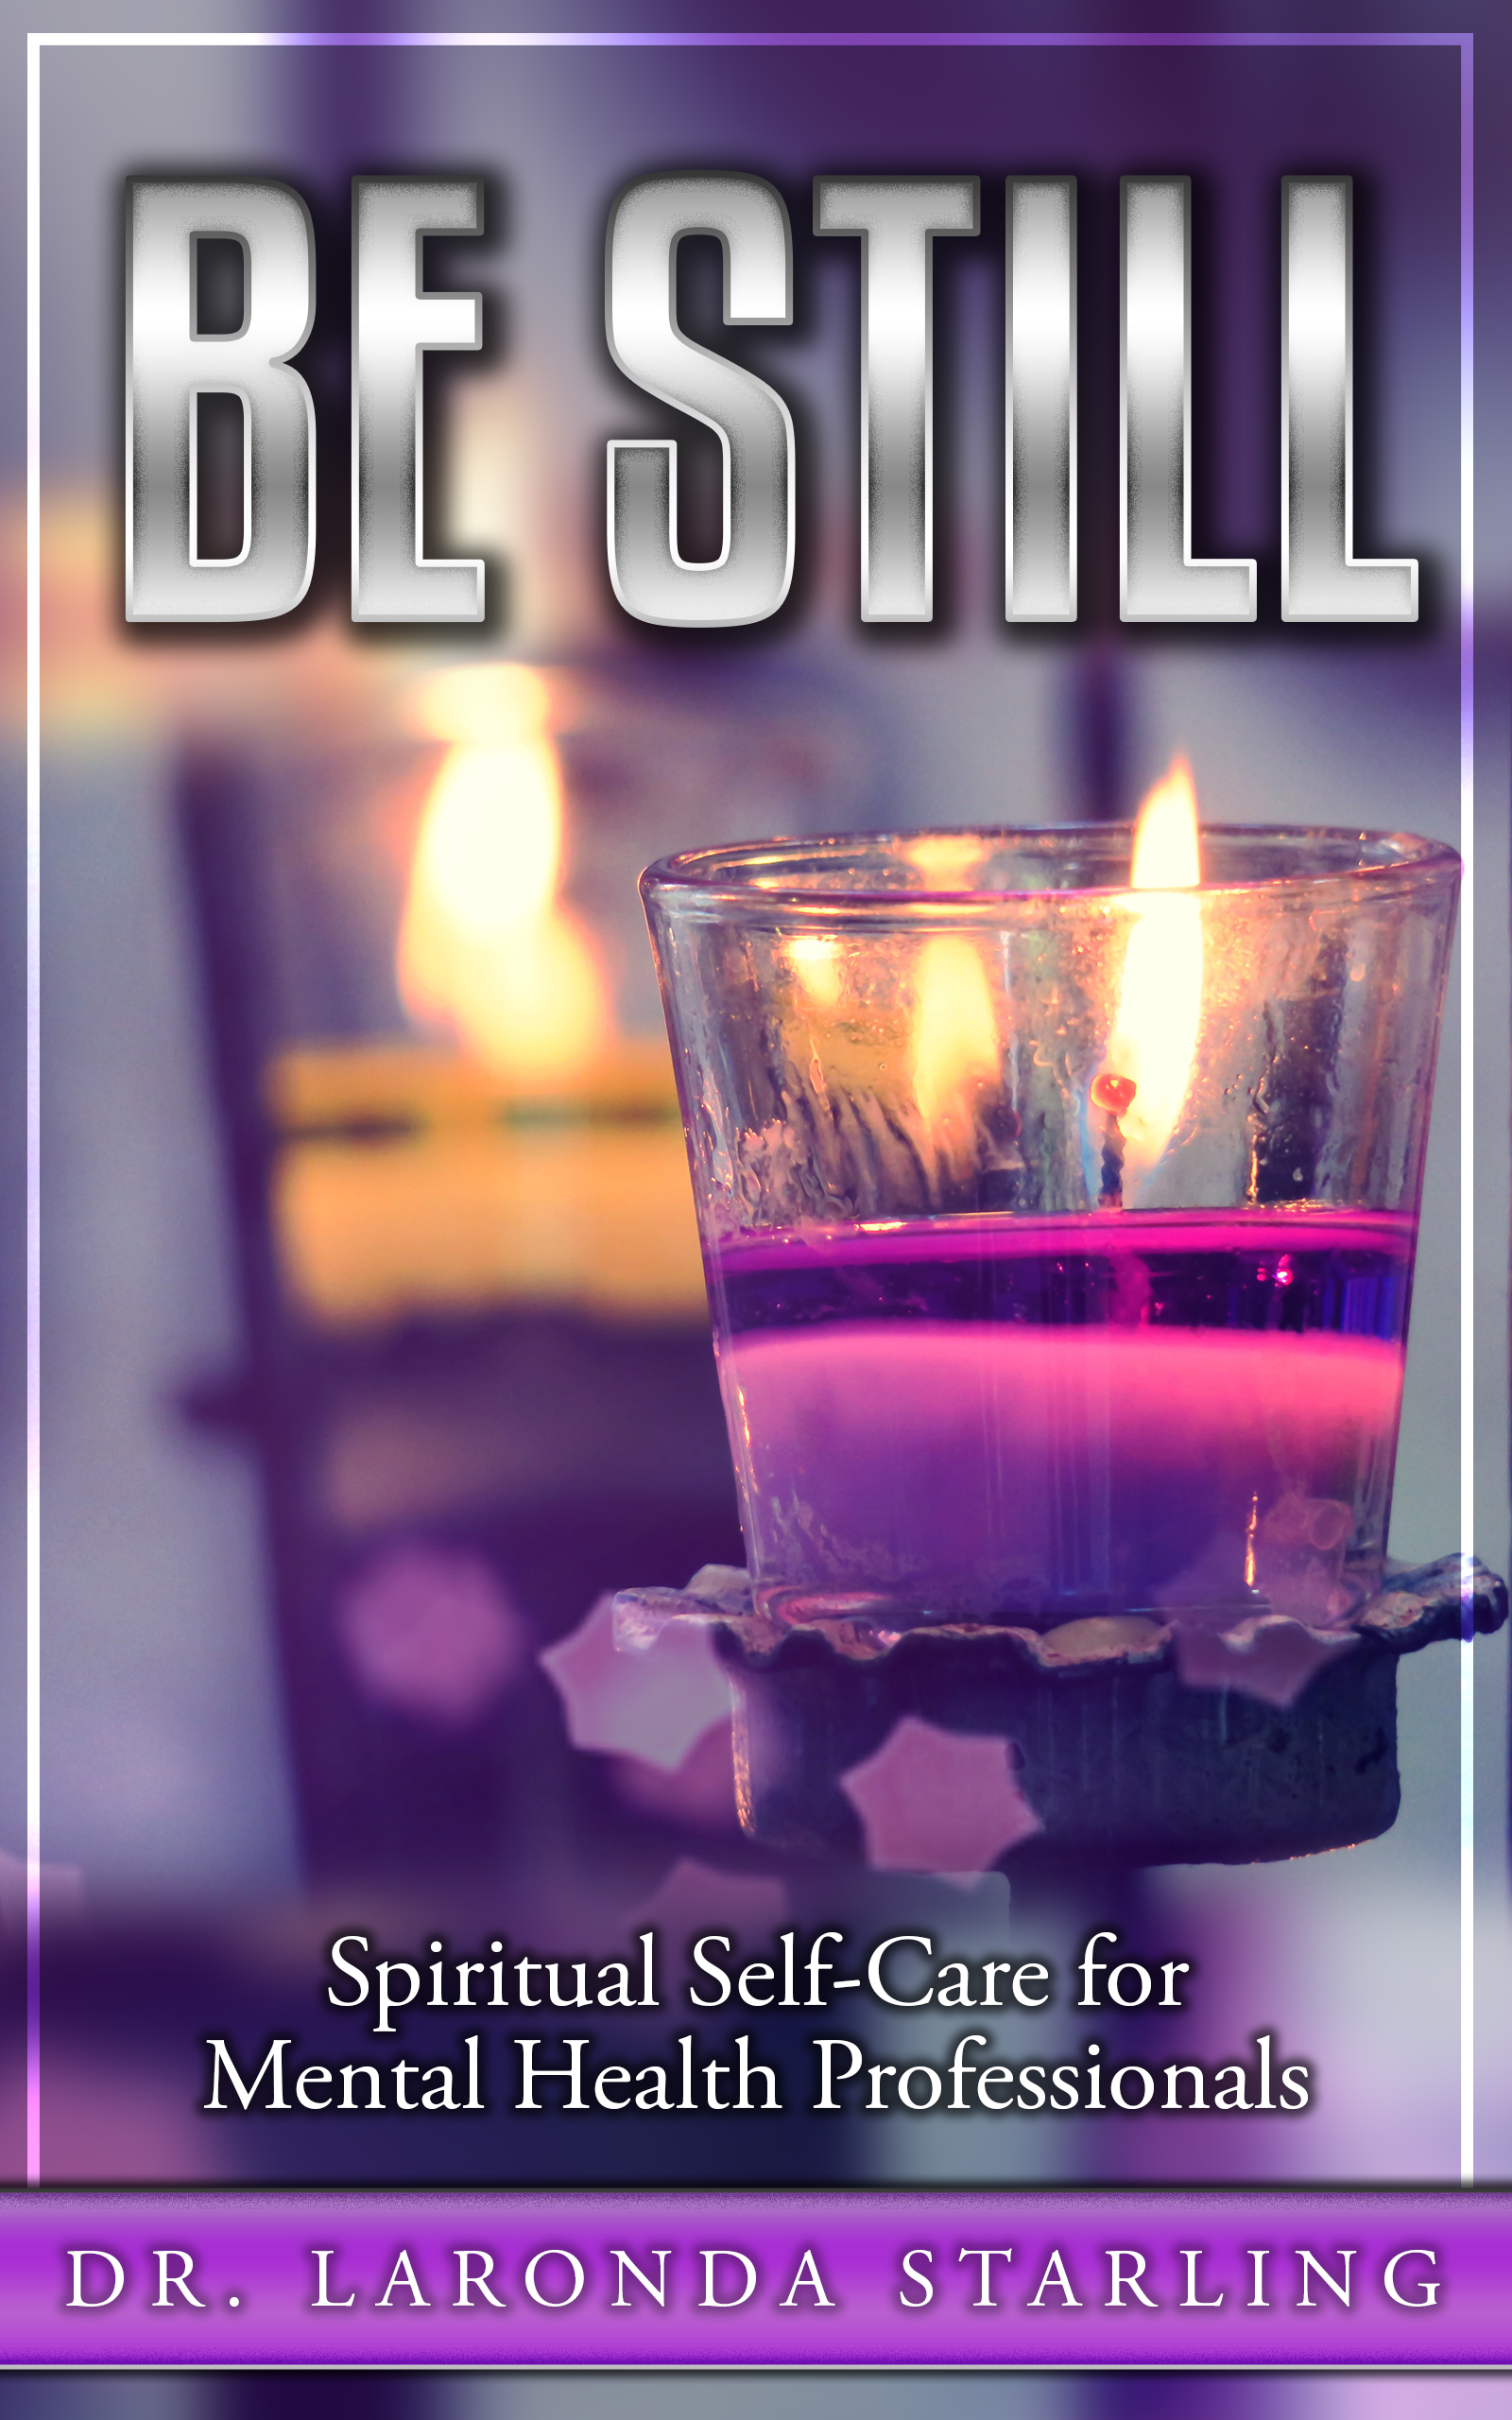 Be Still: Spiritual Self-Care for Mental Health Professionals's Ebook Image